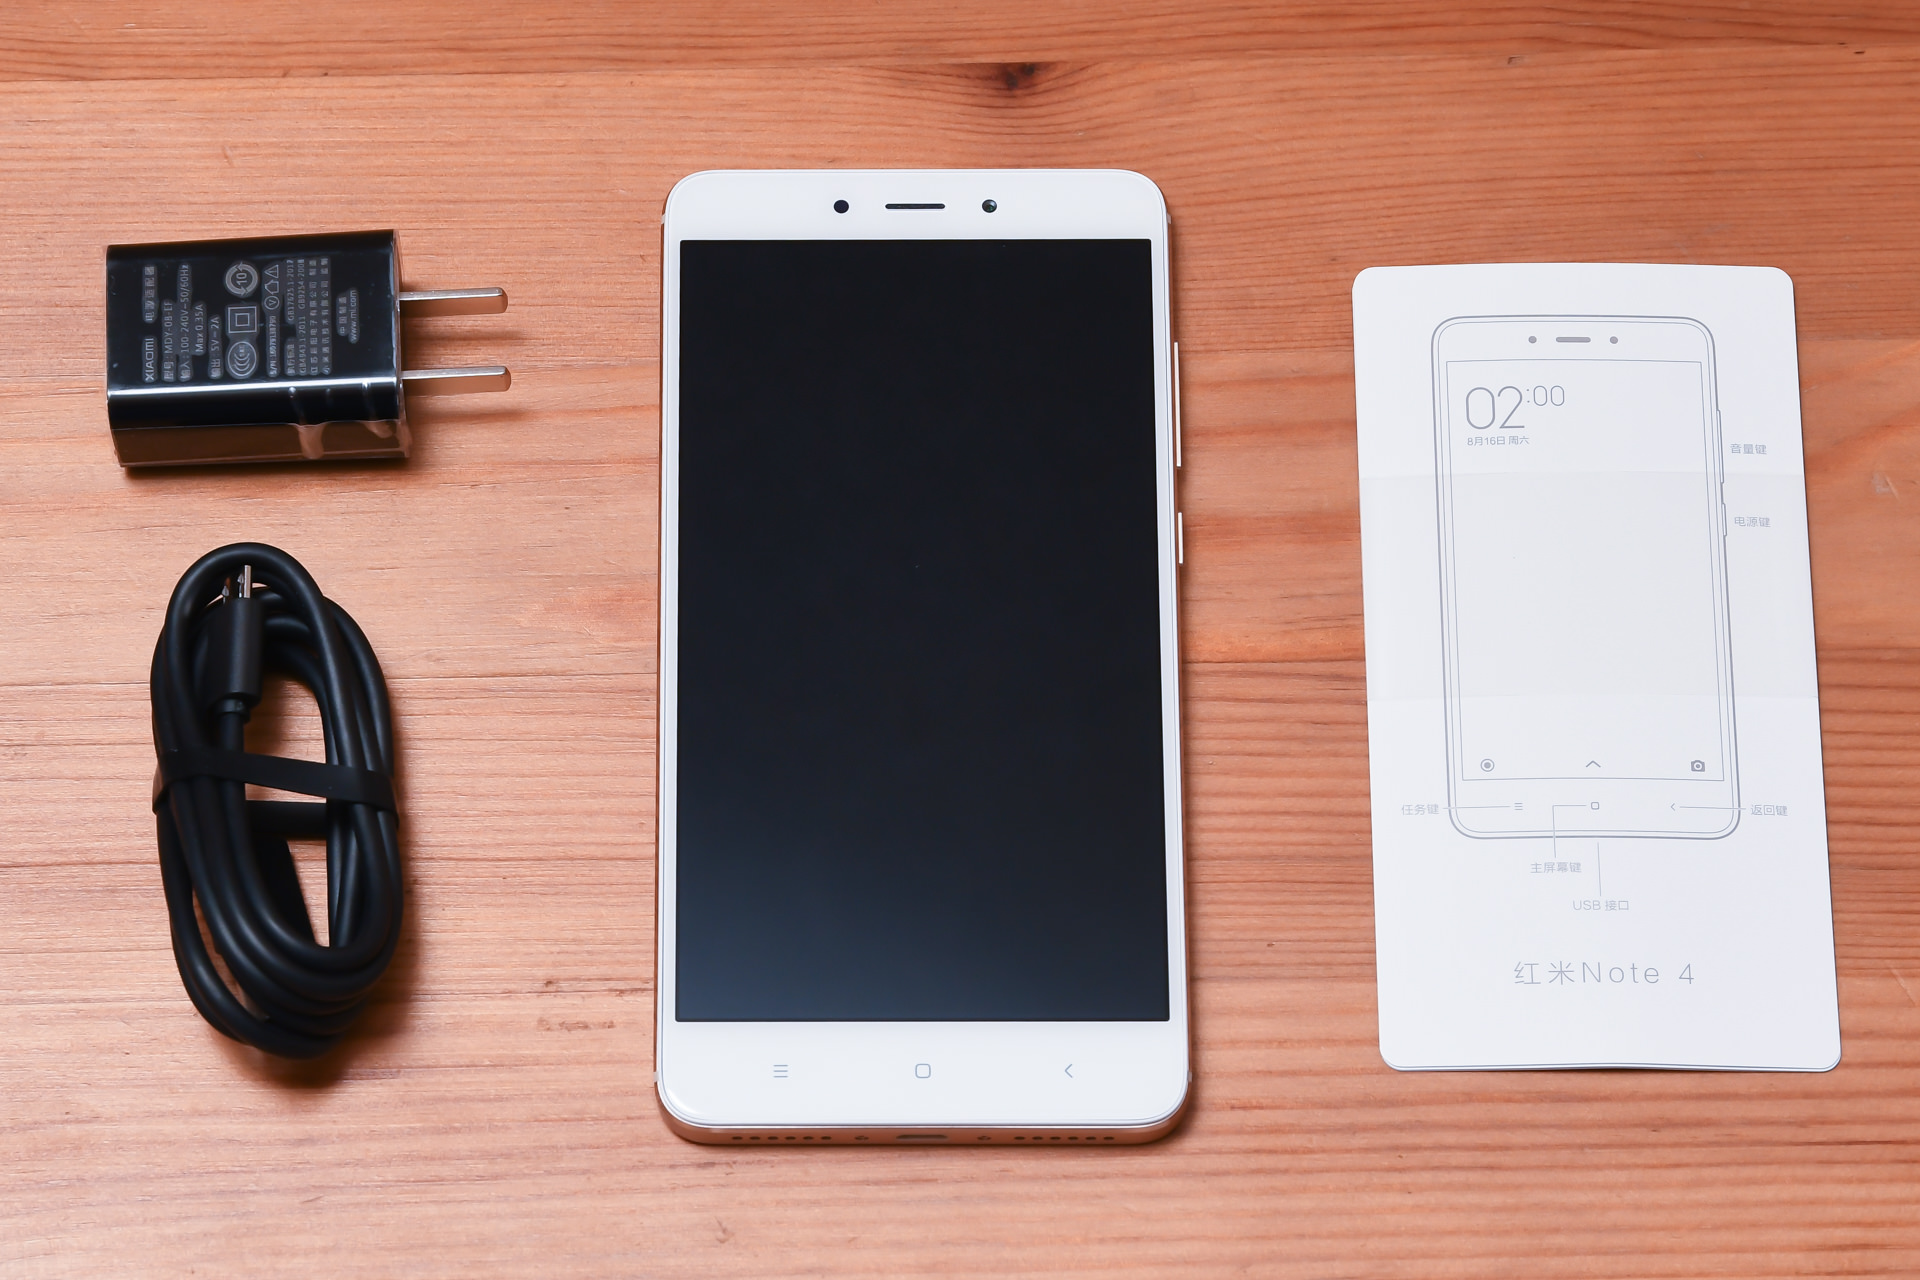 Xiaomi Dévoile Son Redmi Note 4: Xiaomi Redmi Note 4レビュー。コスパはよいけど最初はちょっとクセがある10コアファブレット